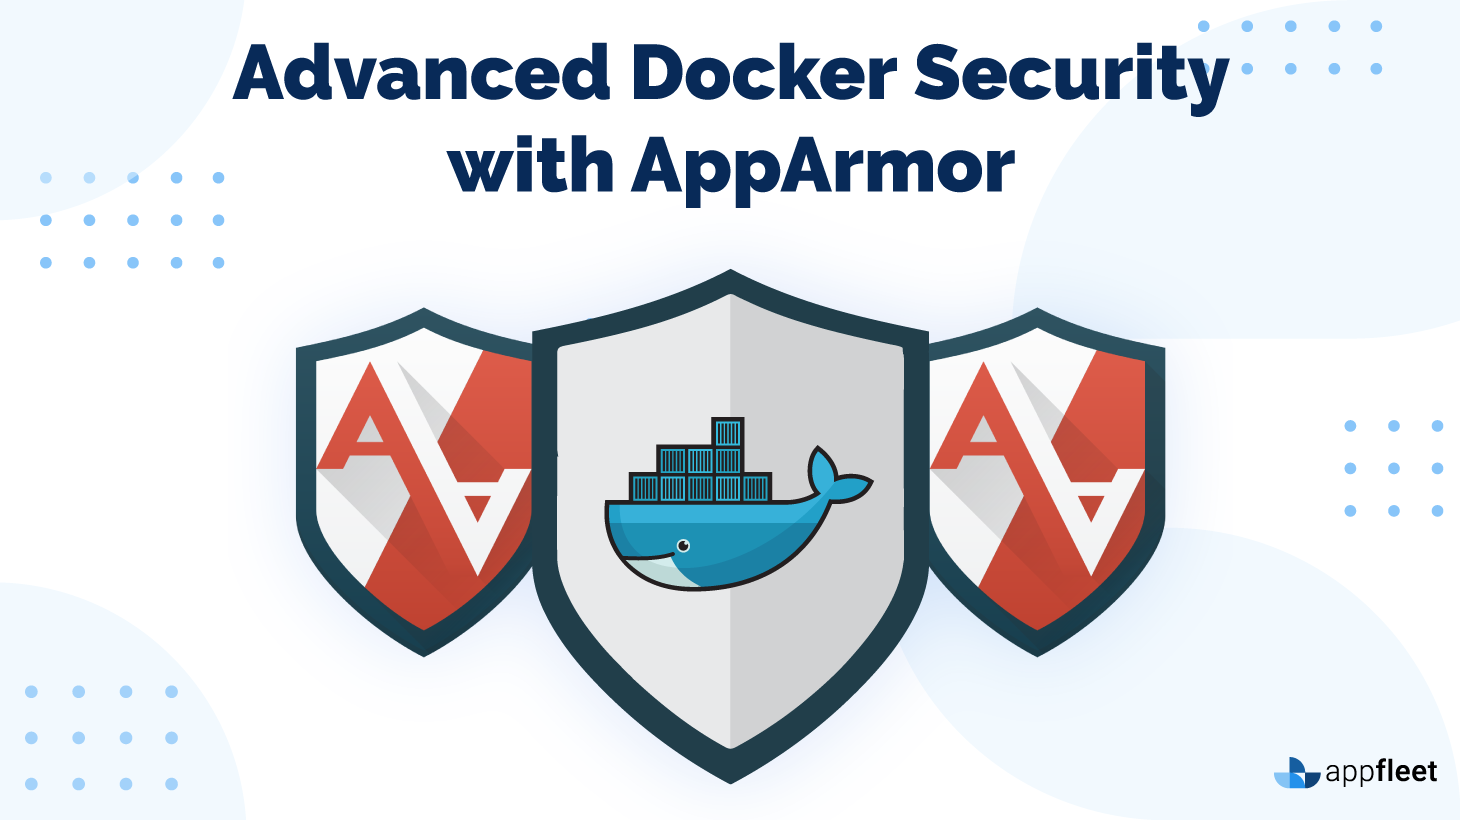 Advanced Docker Security with AppArmor